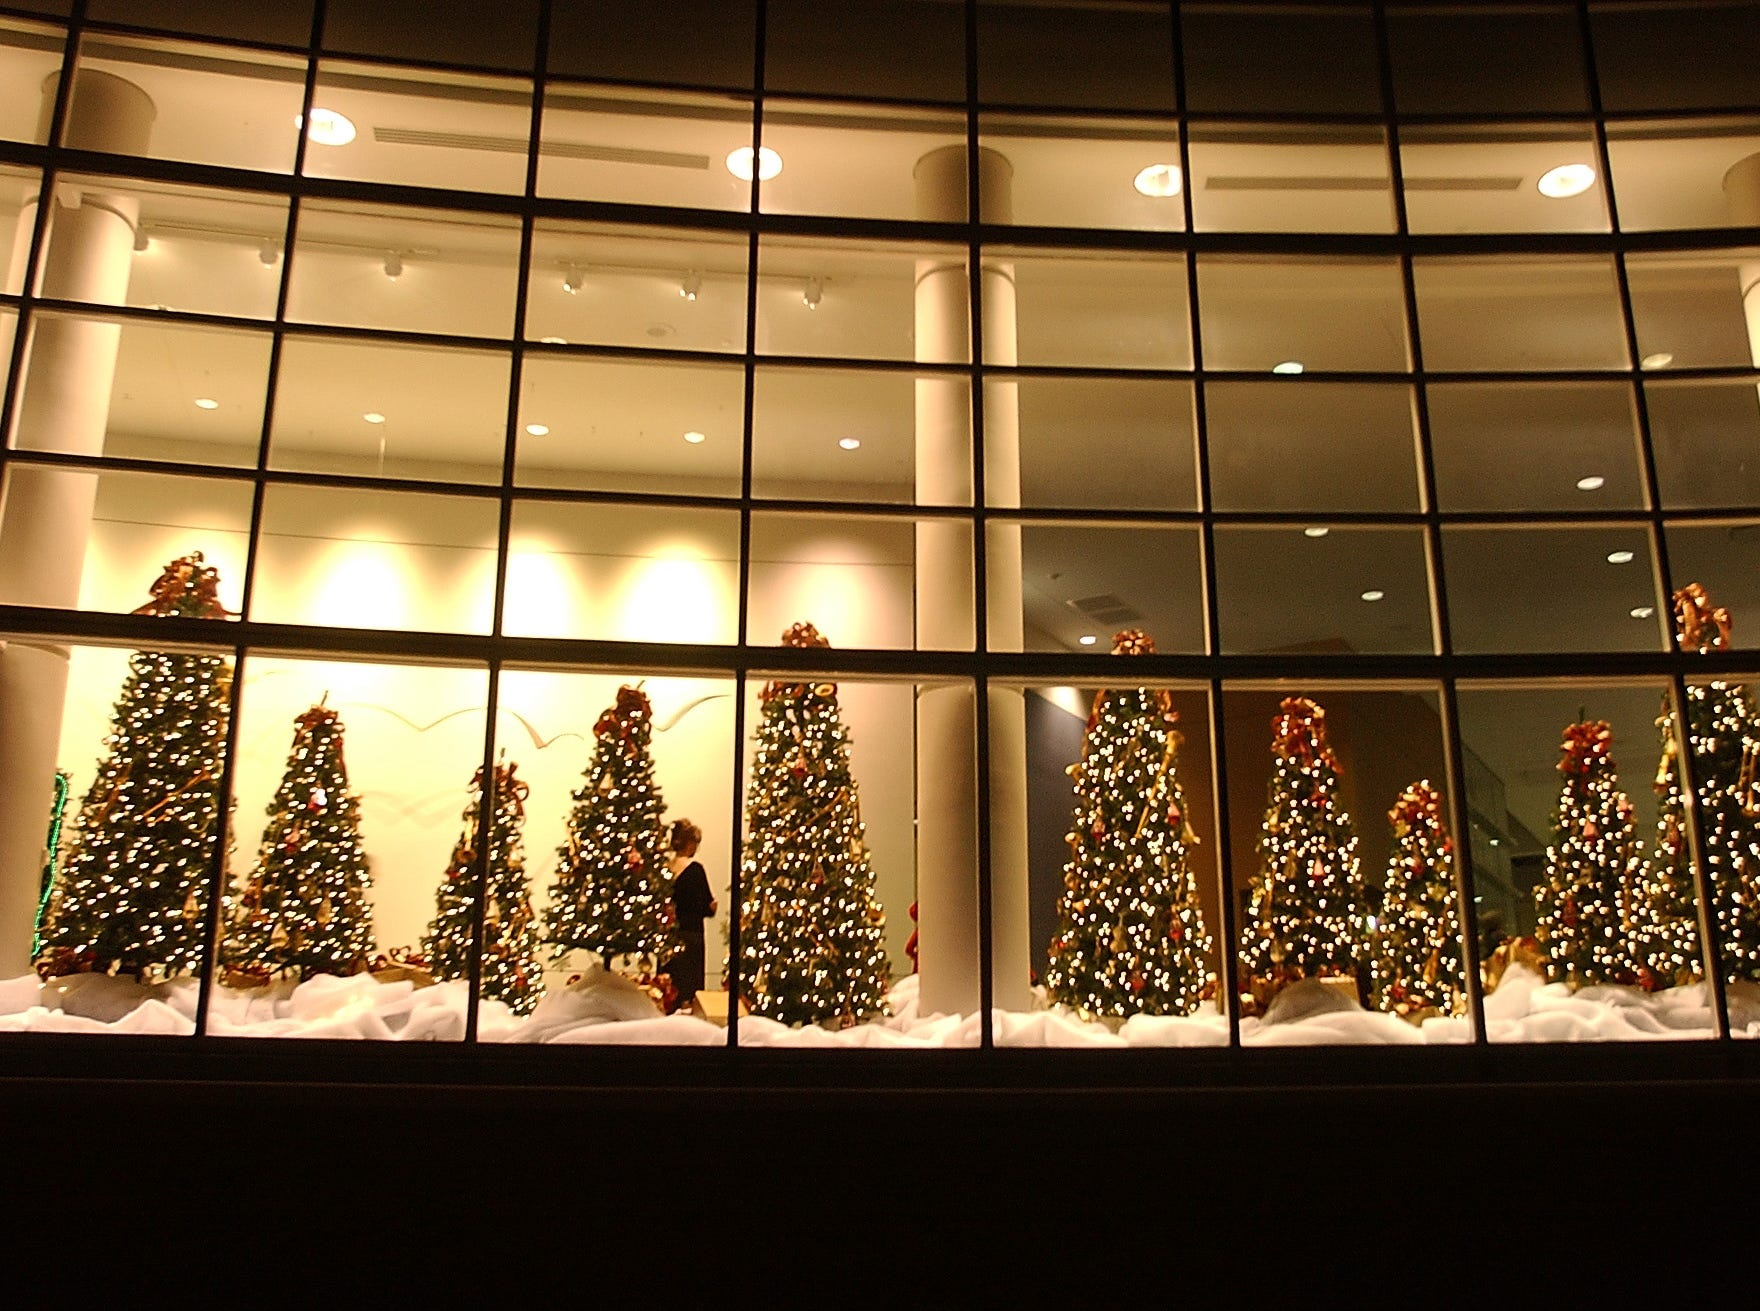 fantasytrees1.CC#63.jpg-----living---The windows of the Knoxville Convention Center were decorated with Christmas trees to celebrate the 19th annual Fantasy of Trees, which benefits the East Tennessee Children's Hospital.Photo by Cathy Clarke, Knoxville News Sentinel